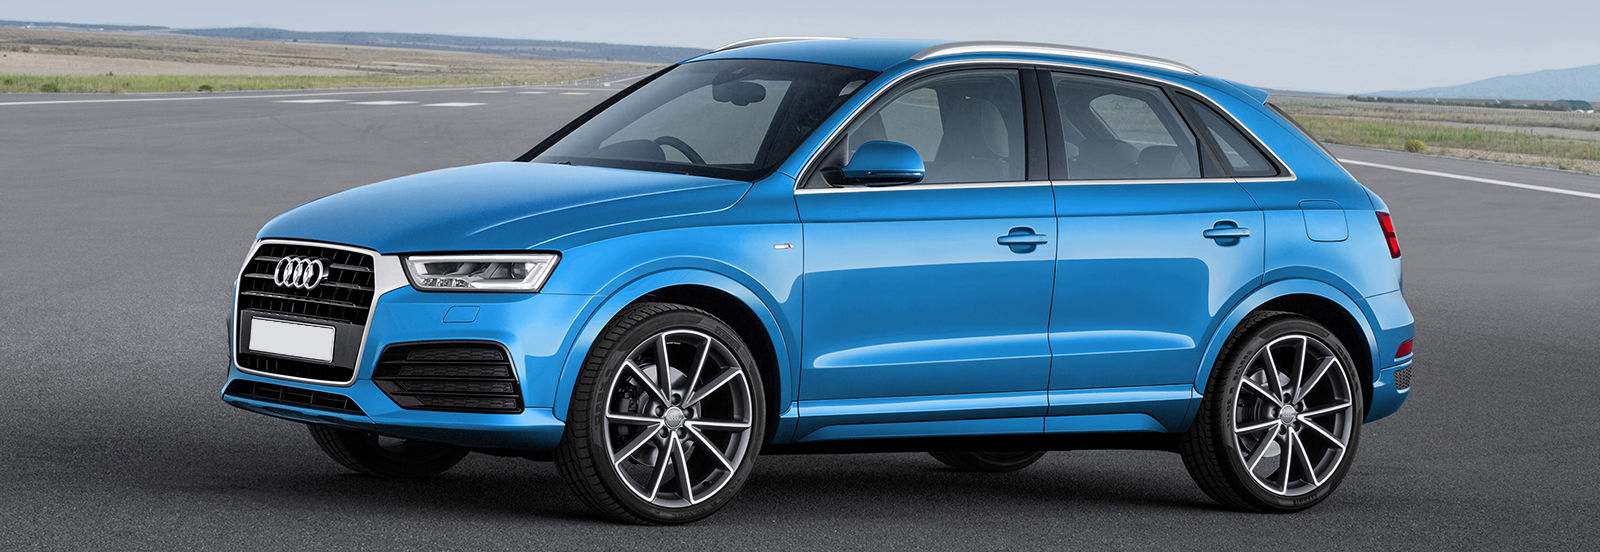 Audi Crossover, SUV And 4x4 Range Guide